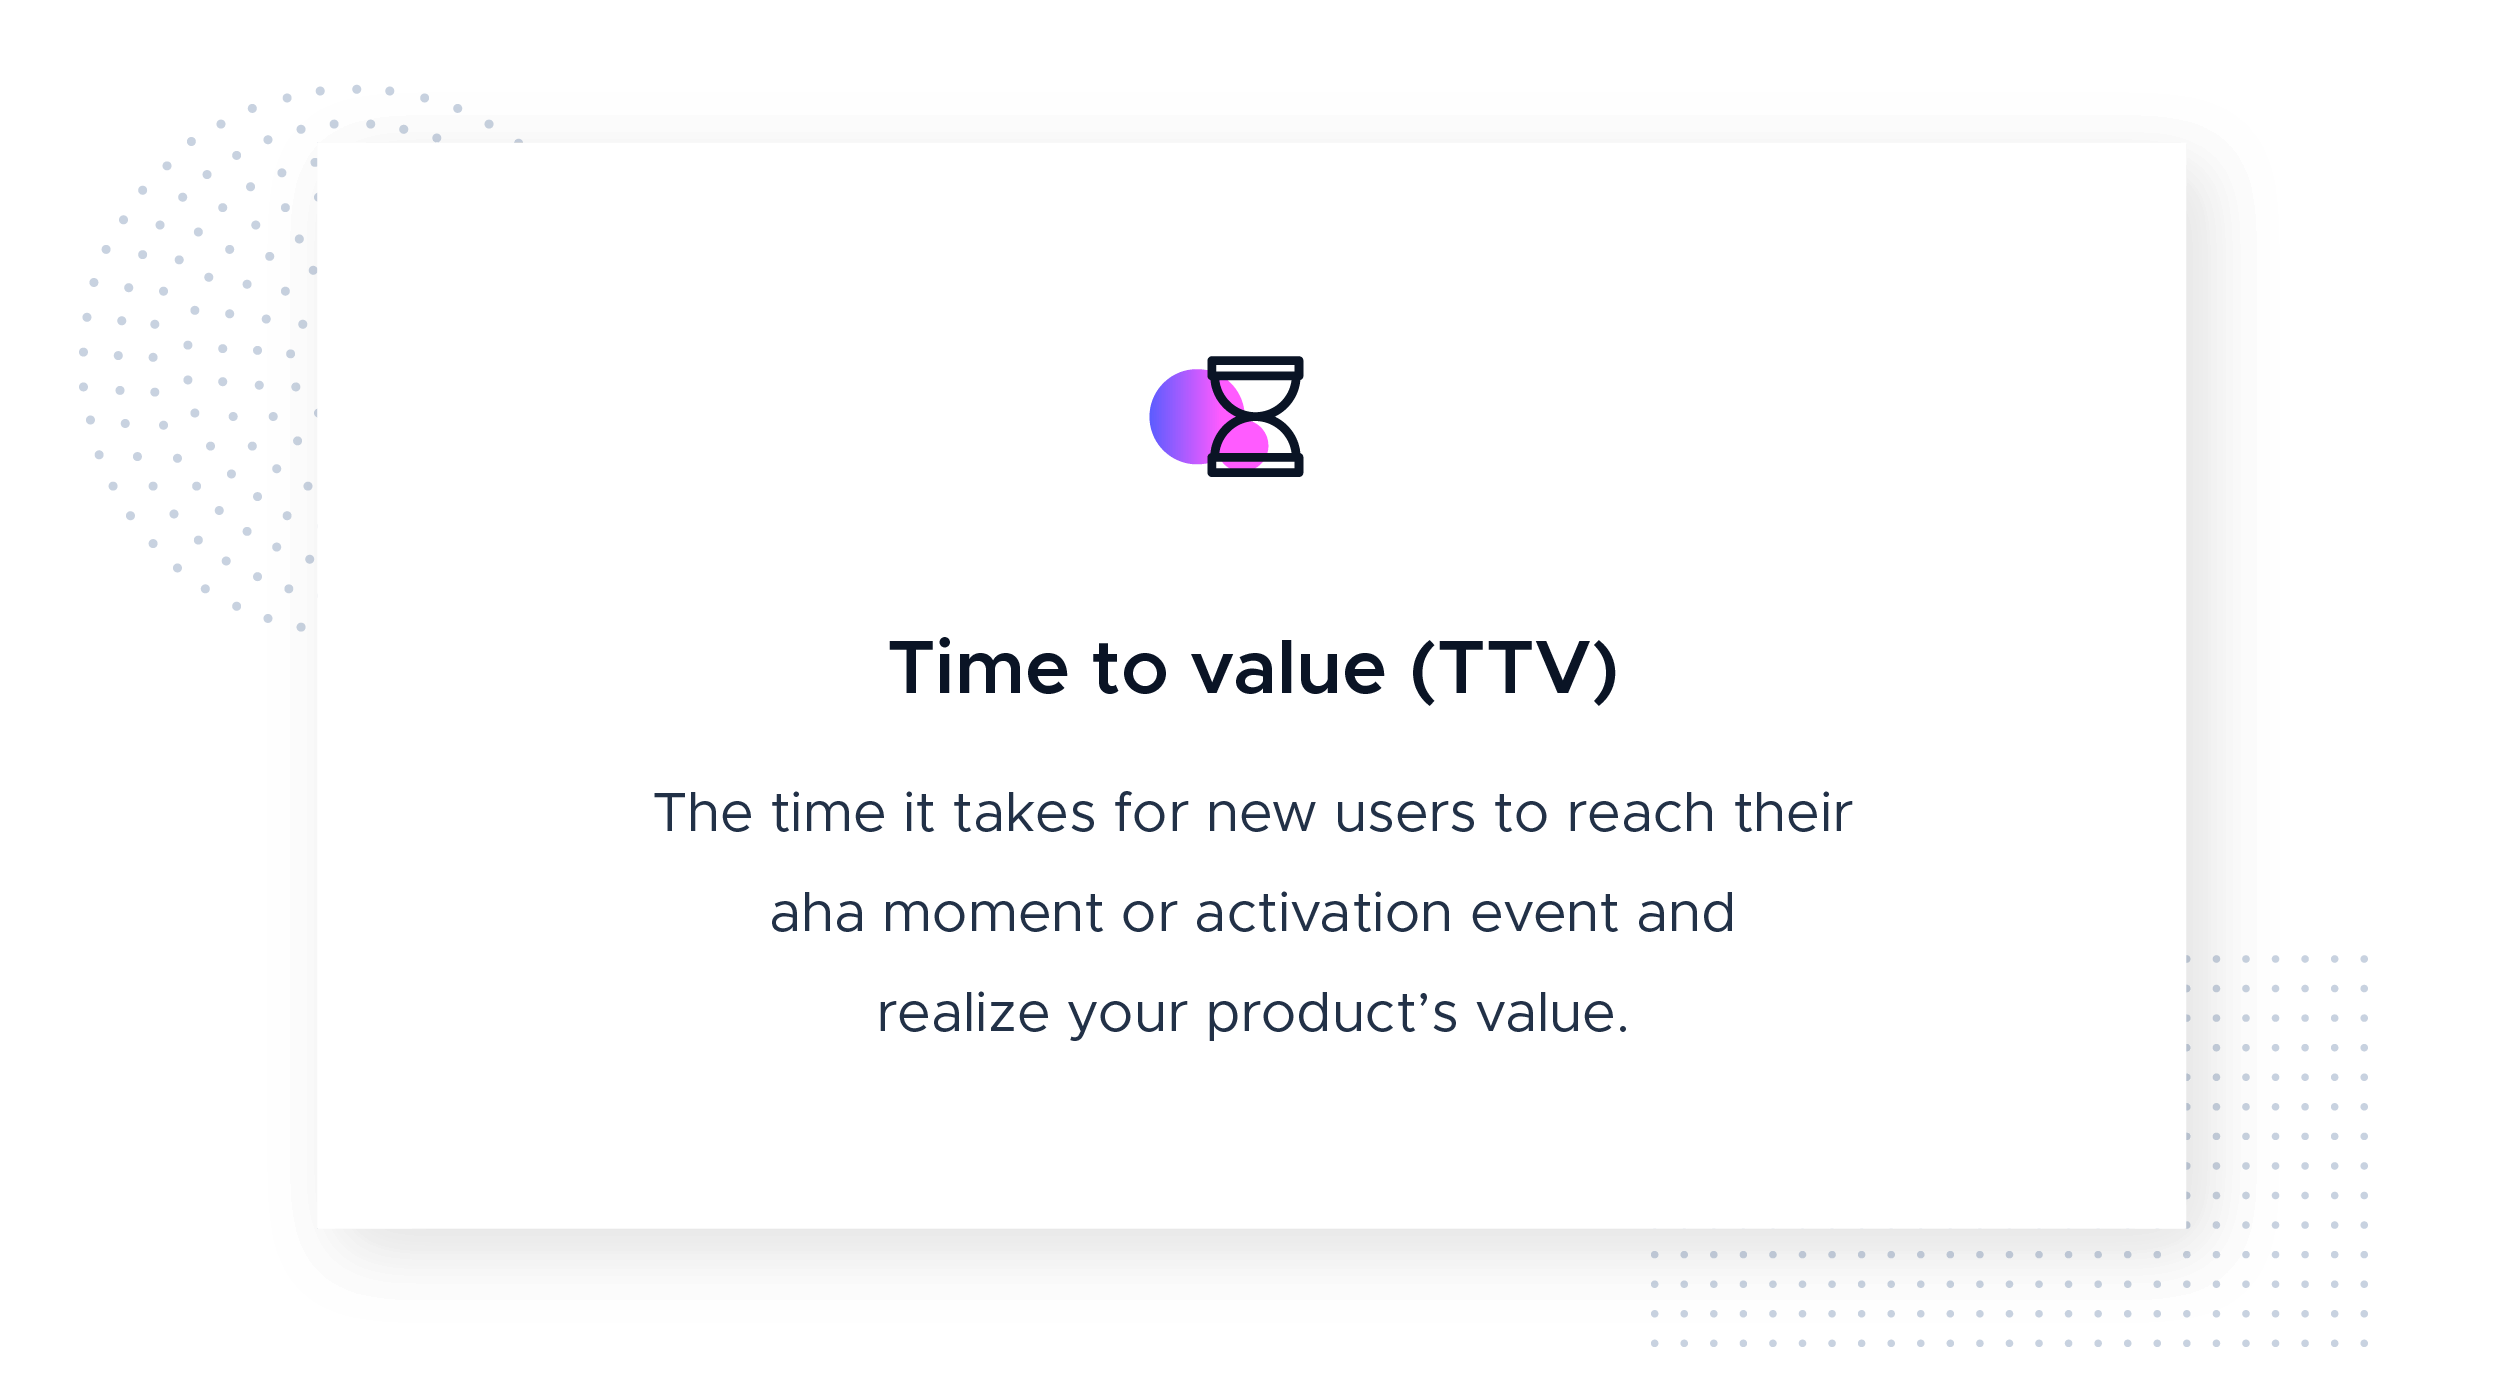 Time to value definition with icon from the Product-Led Growth Collective. This image defines time to value (TTV) as the time it takes for new users to reach their aha moment or activation event and realize your product's value.